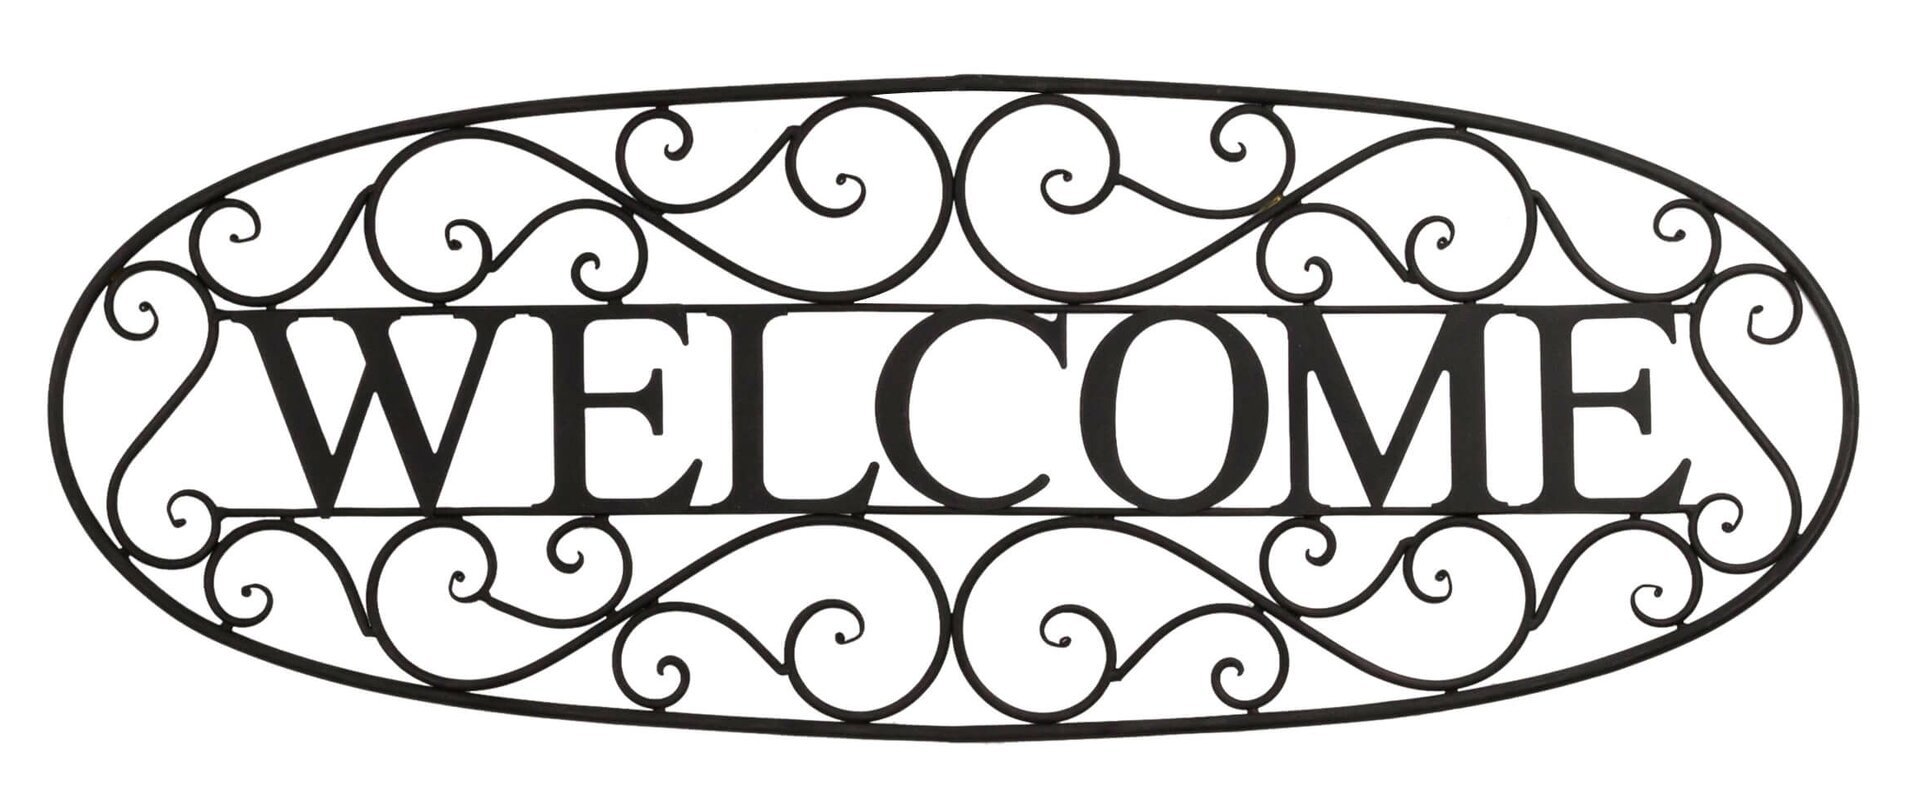 Black Wrought Iron Wall Decor bayaccents welcome sign wrought iron wall décor & reviews | wayfair